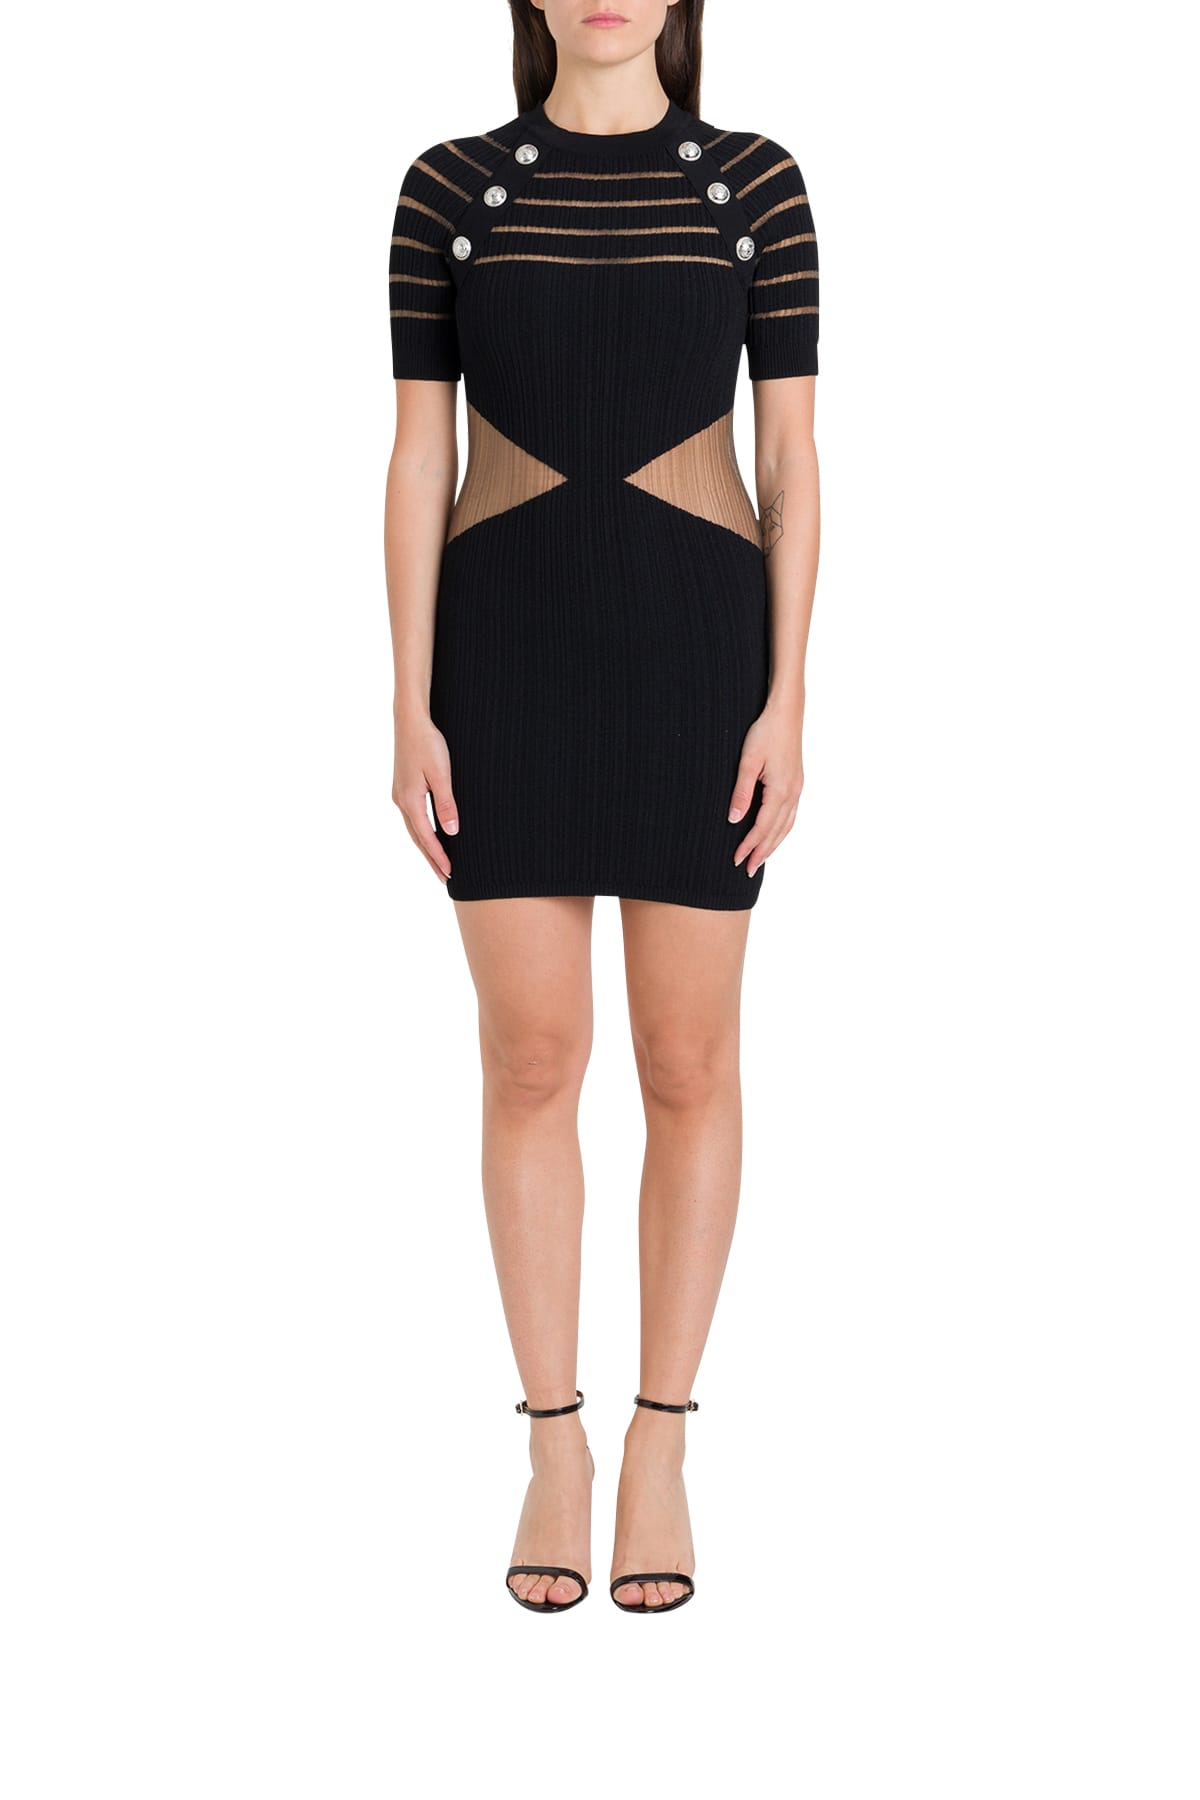 Buy Balmain Sheer Detail And Buttoned Stretch Knit Dress online, shop Balmain with free shipping